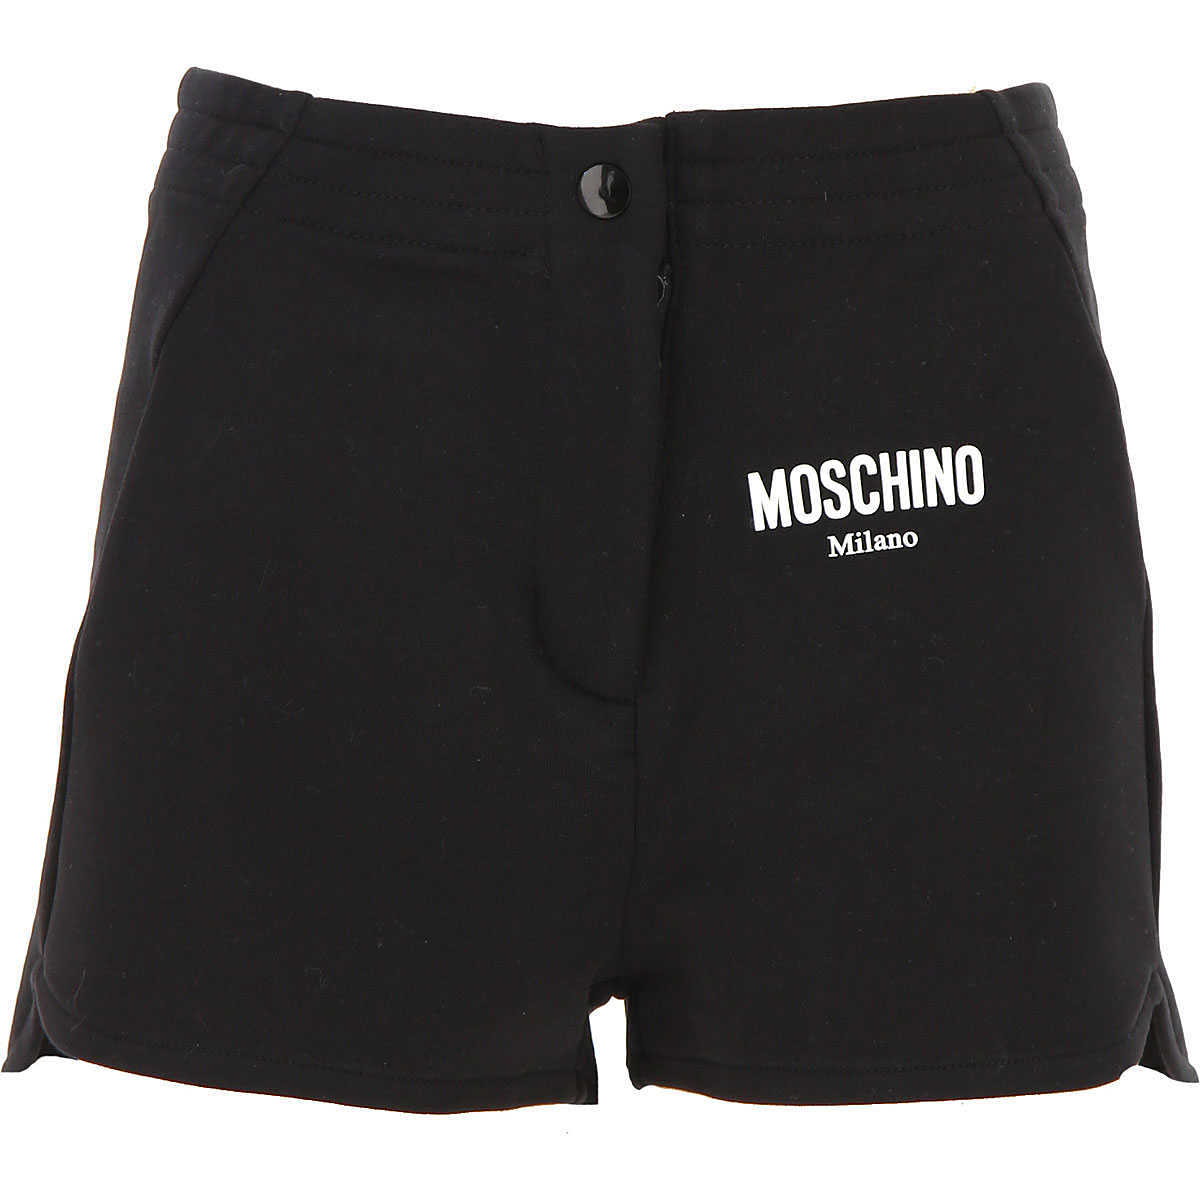 Moschino Shorts for Women On Sale Black DK - GOOFASH - Womens SHORTS